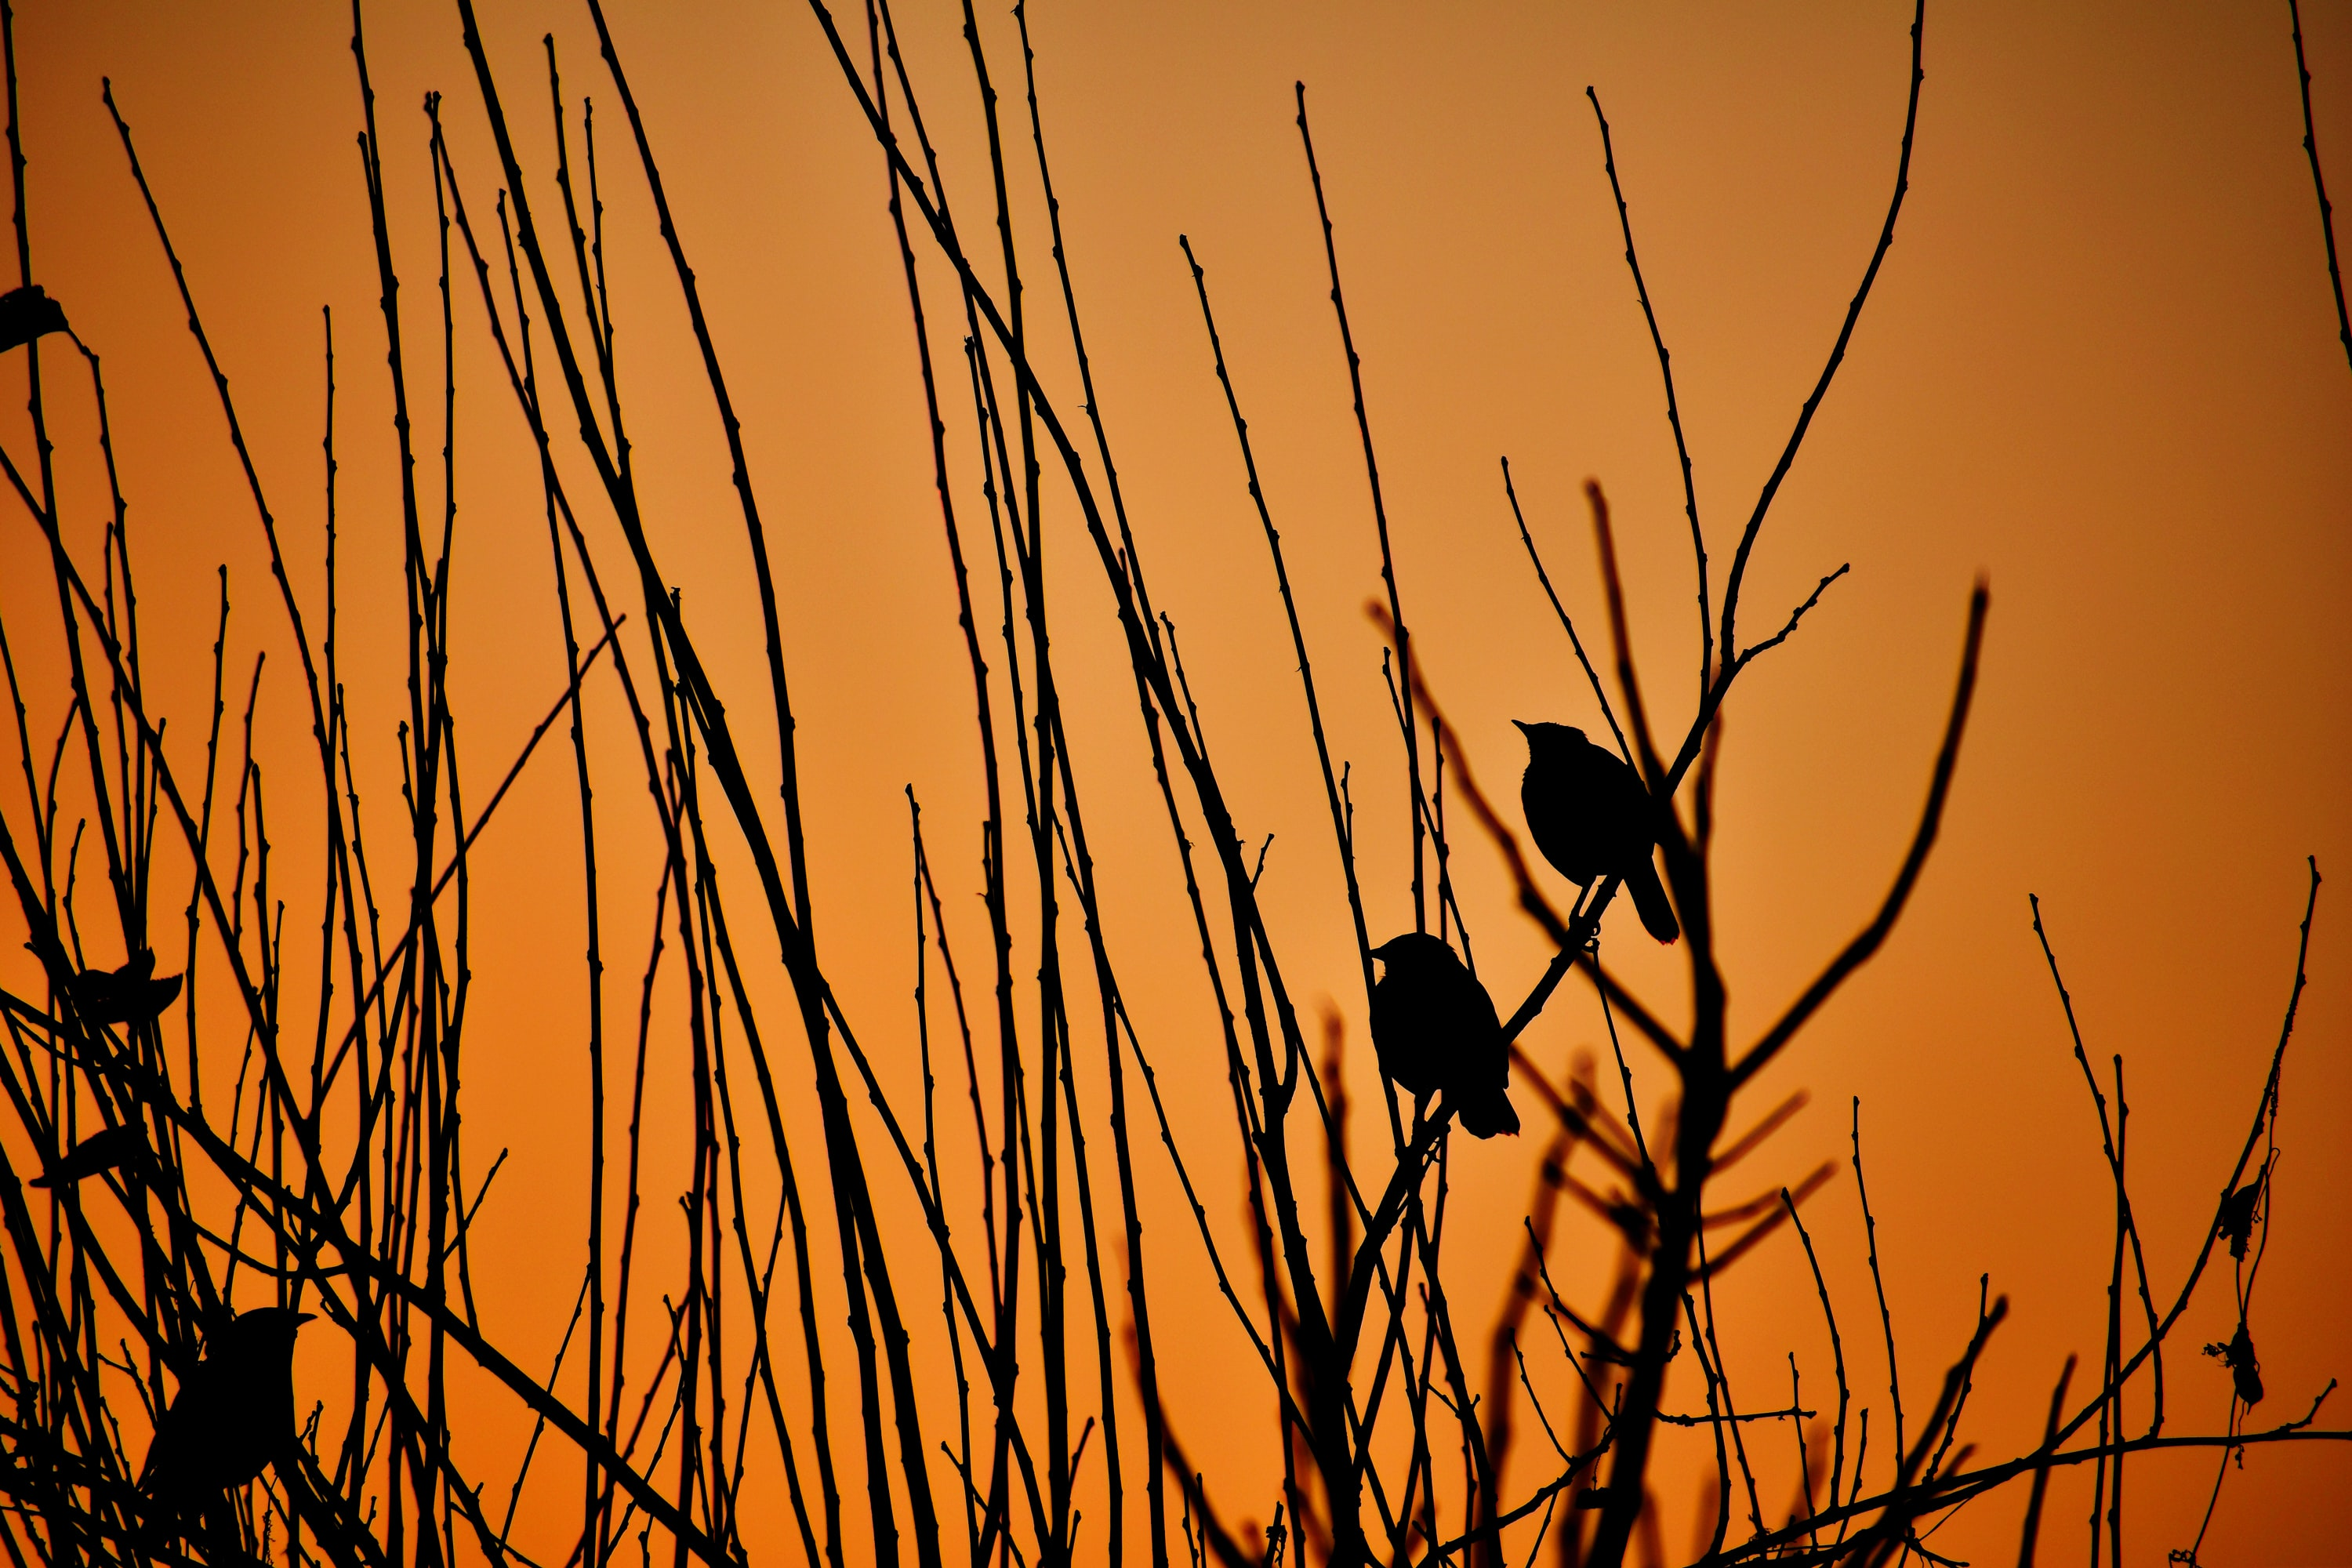 silhouette of bird on stick